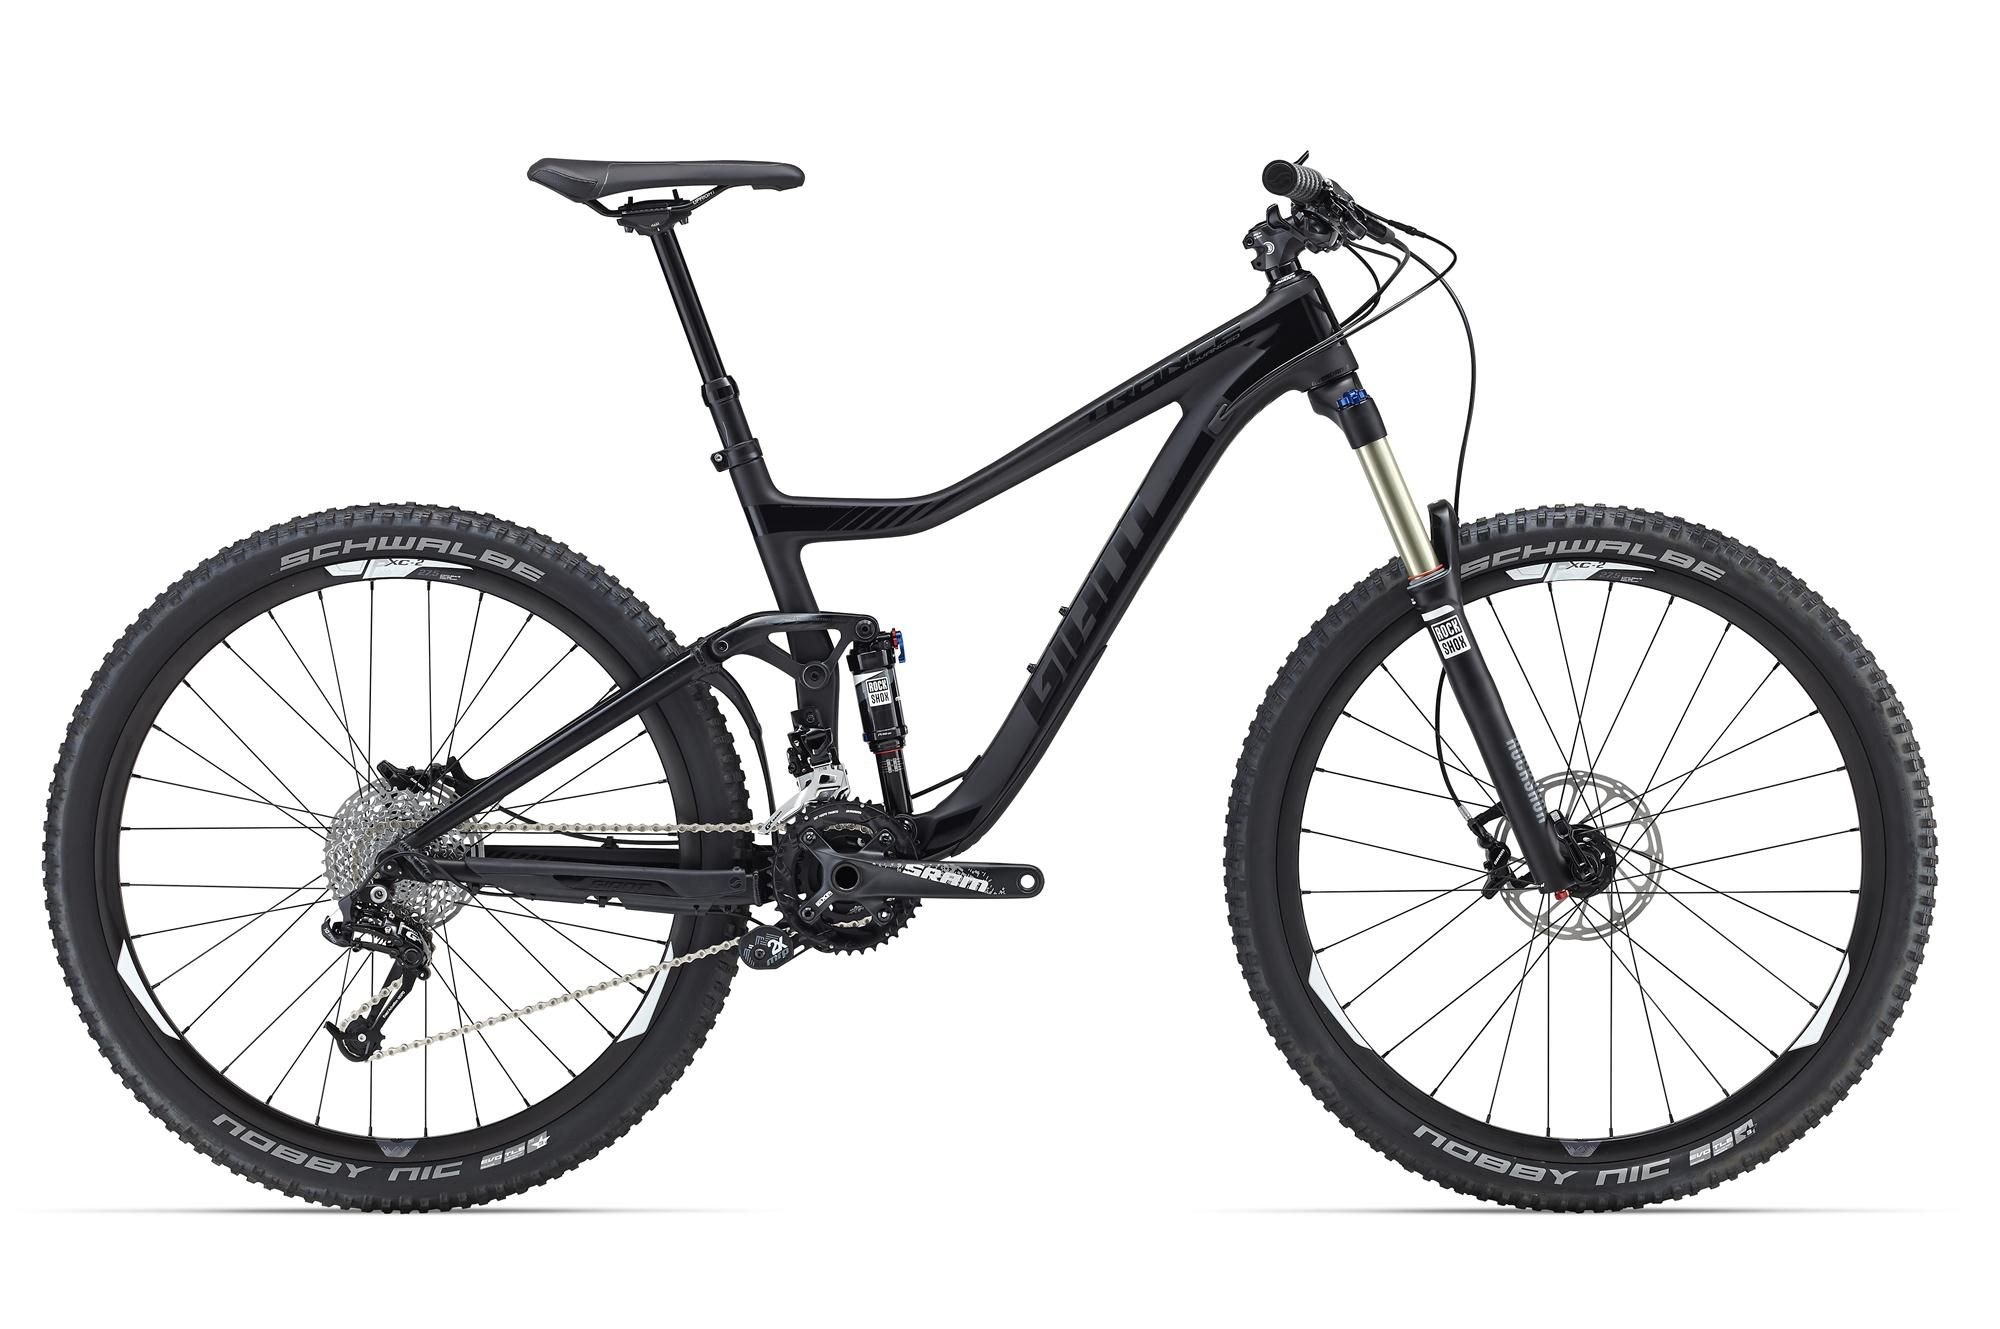 Велосипед Giant Trance Advanced 27.5 2 2016 велосипед giant trinity advanced pro 0 2016